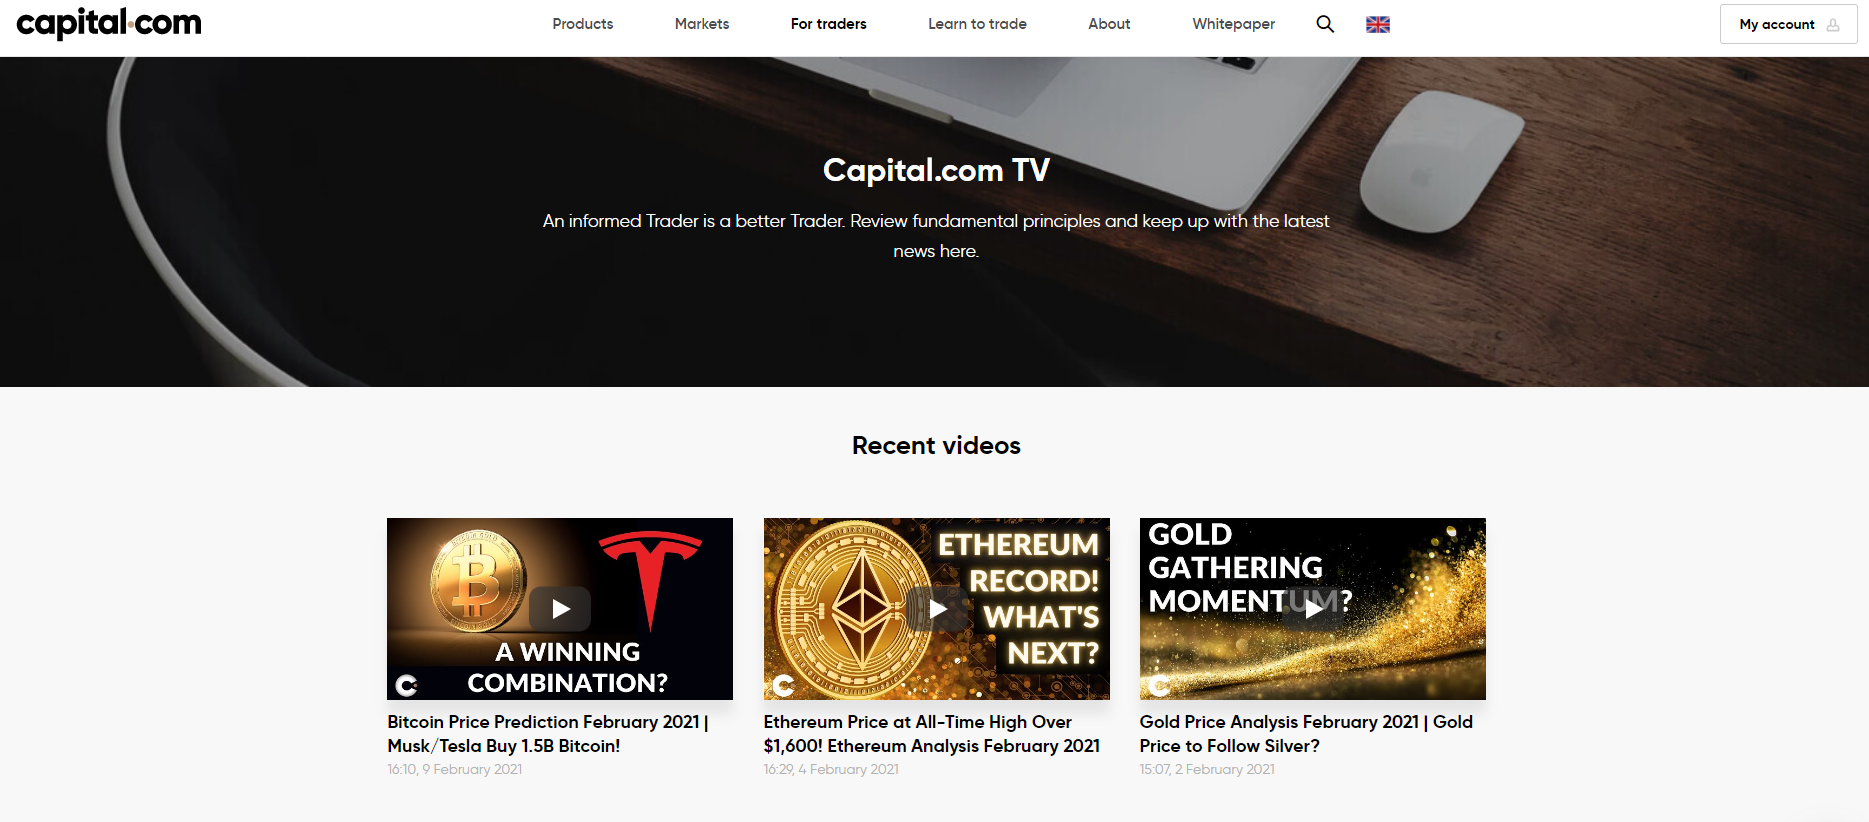 Capital.com review - Research - Capital.com TV